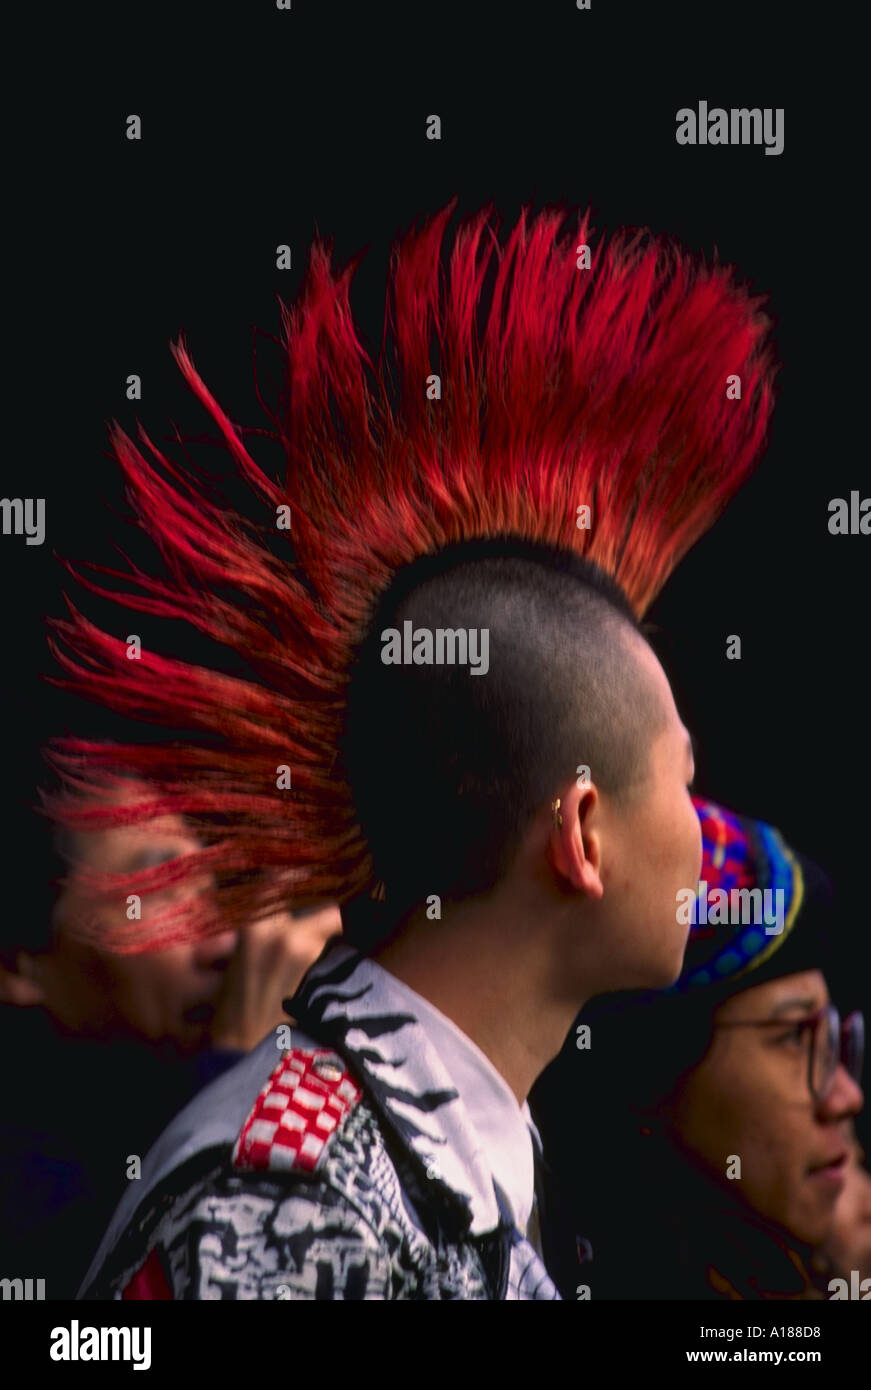 Chinese American Teenage Boy With Punk Hairstyle New York City Stock